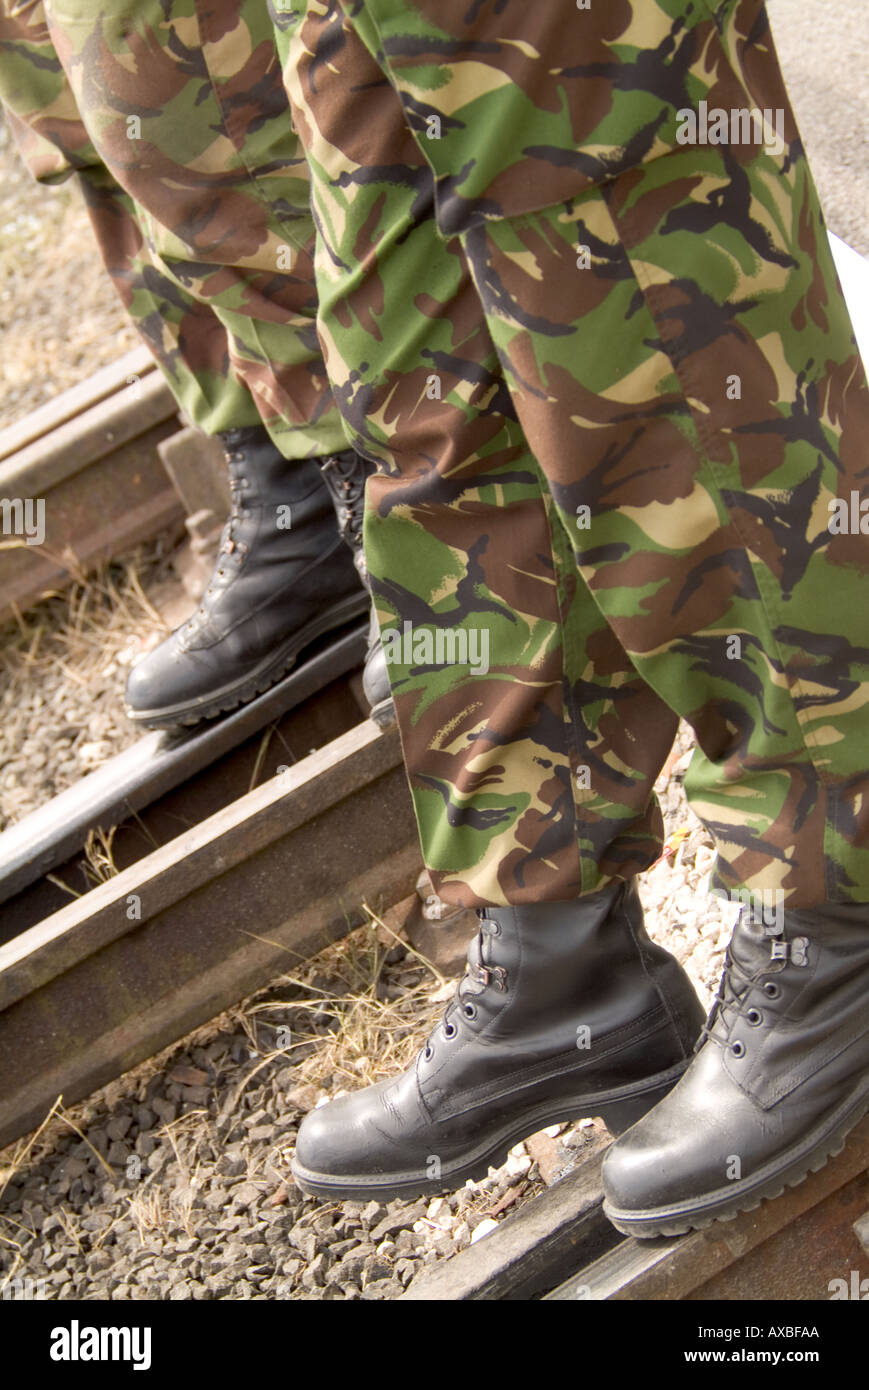 soldier army miltary fight war camo camoflarge boots railway line guard town police action peace time armed forces jack boot - Stock Image